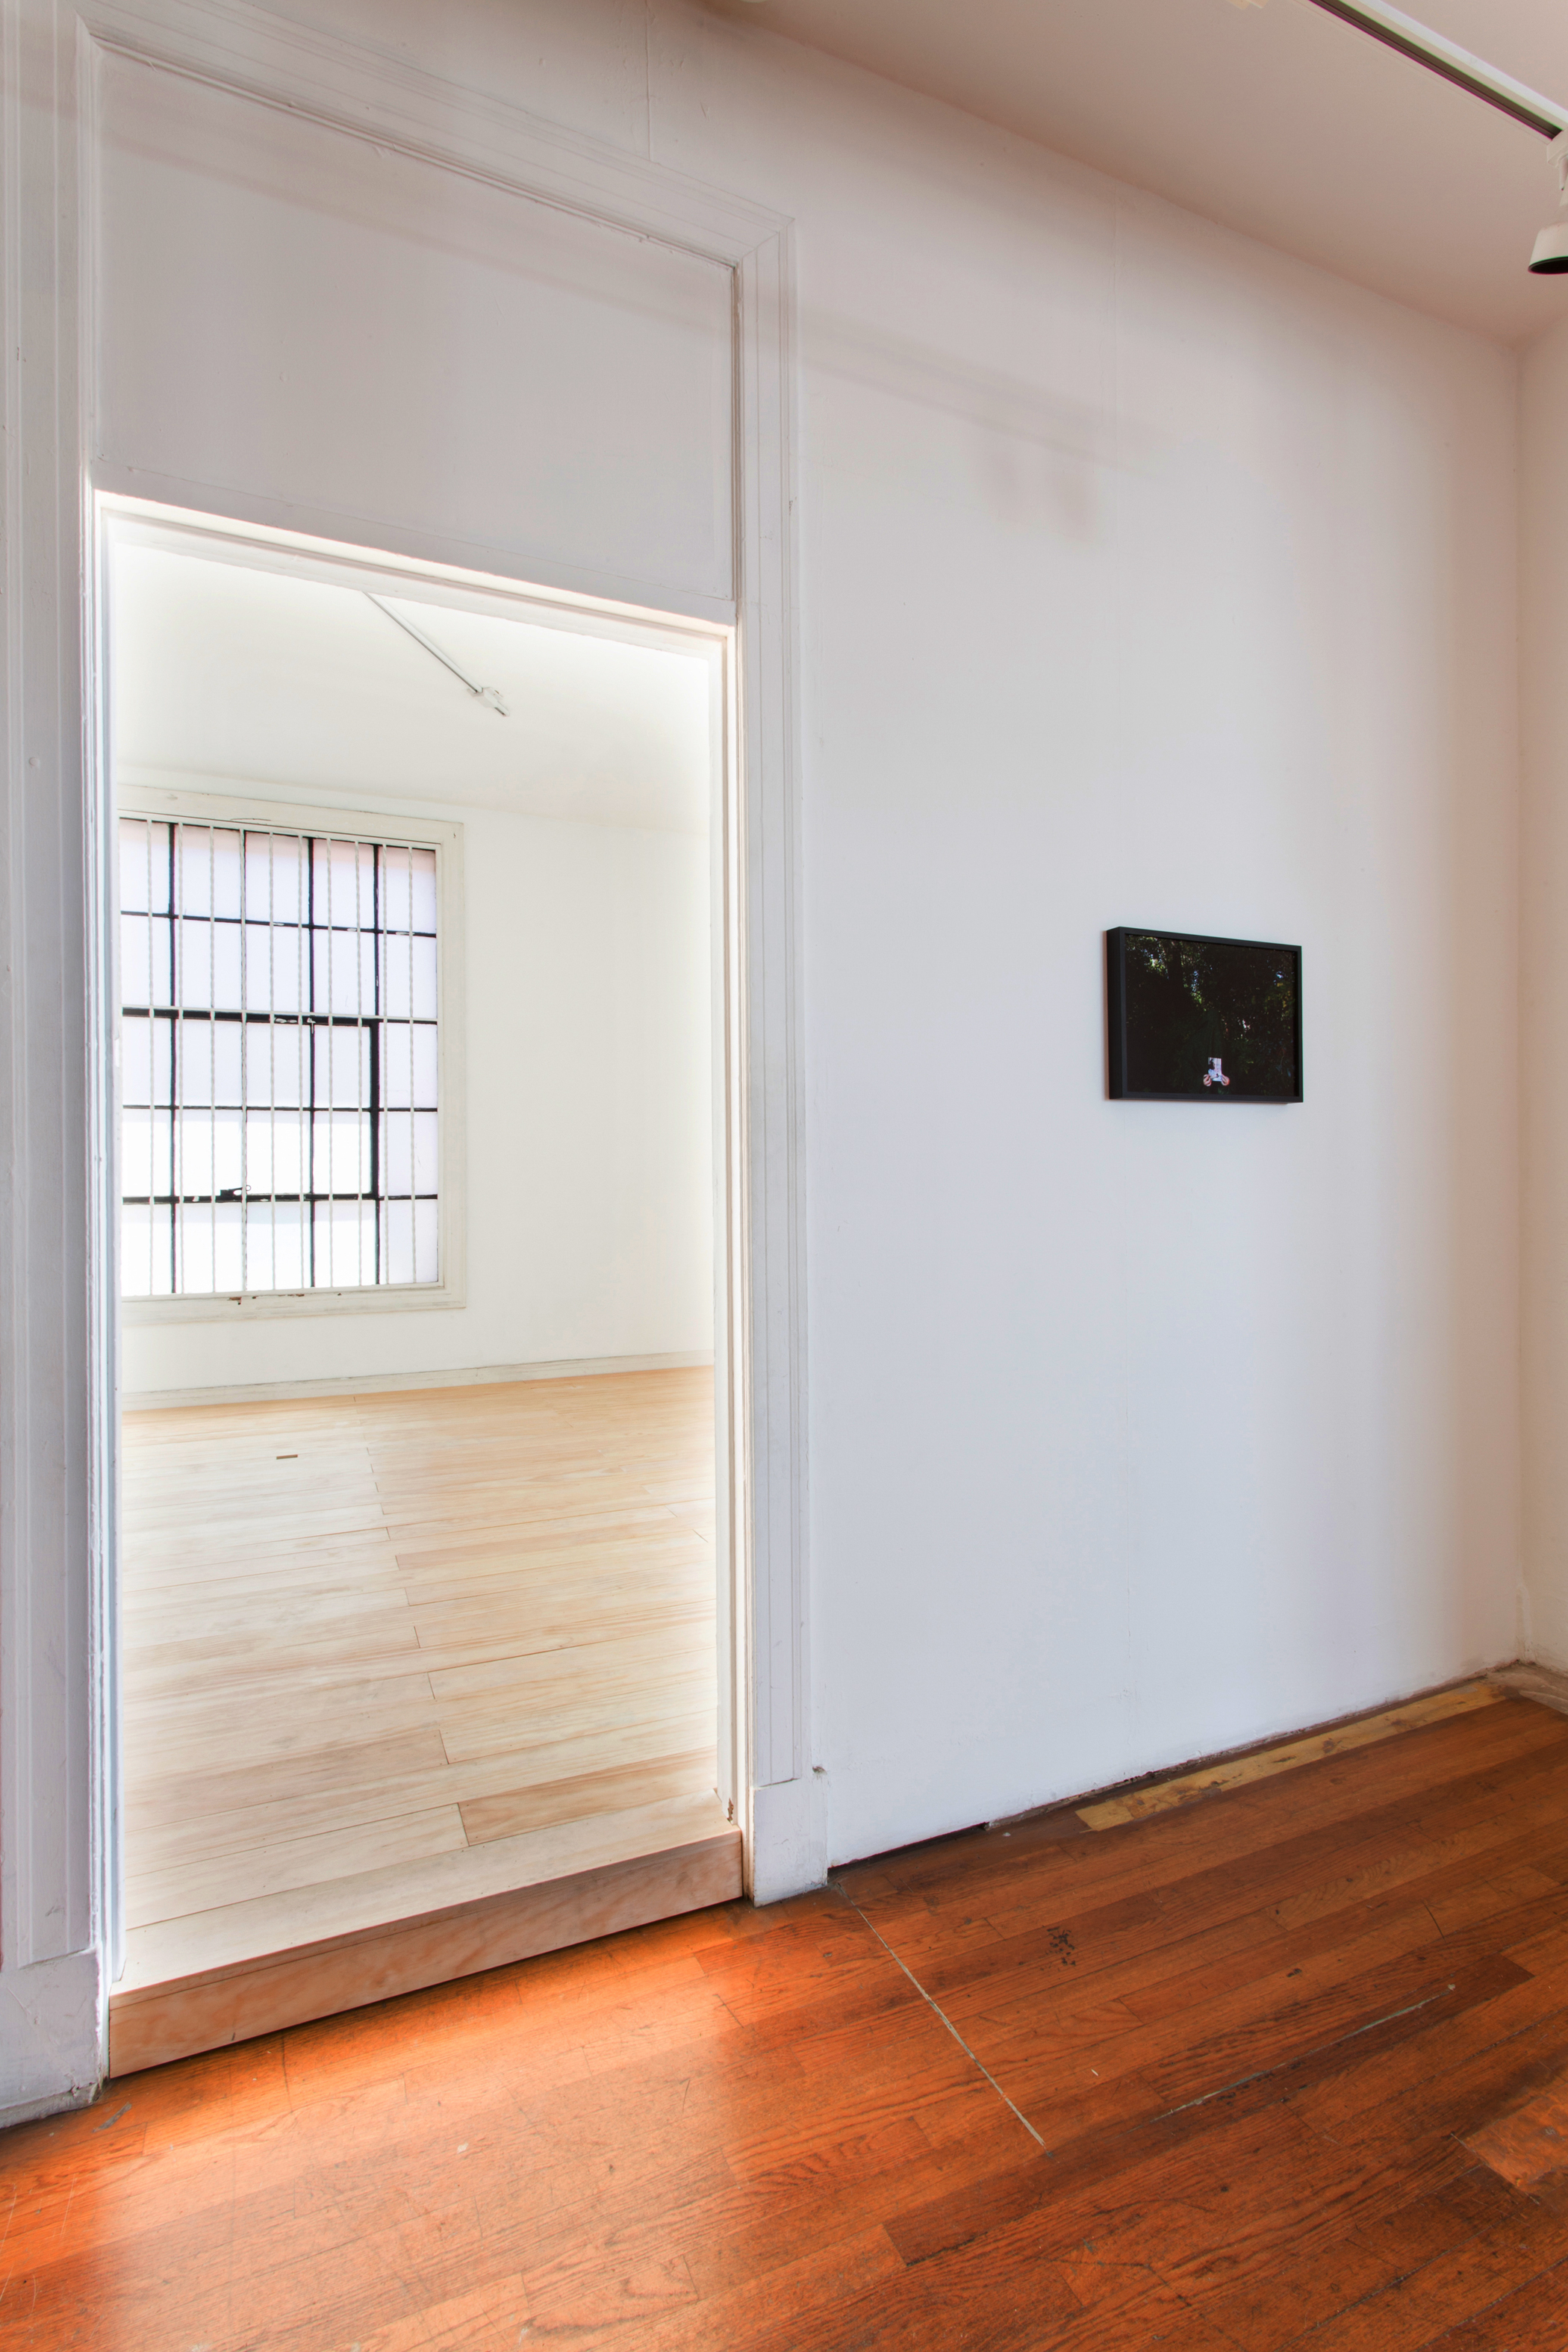 Still Beneath the Surface (installation view)